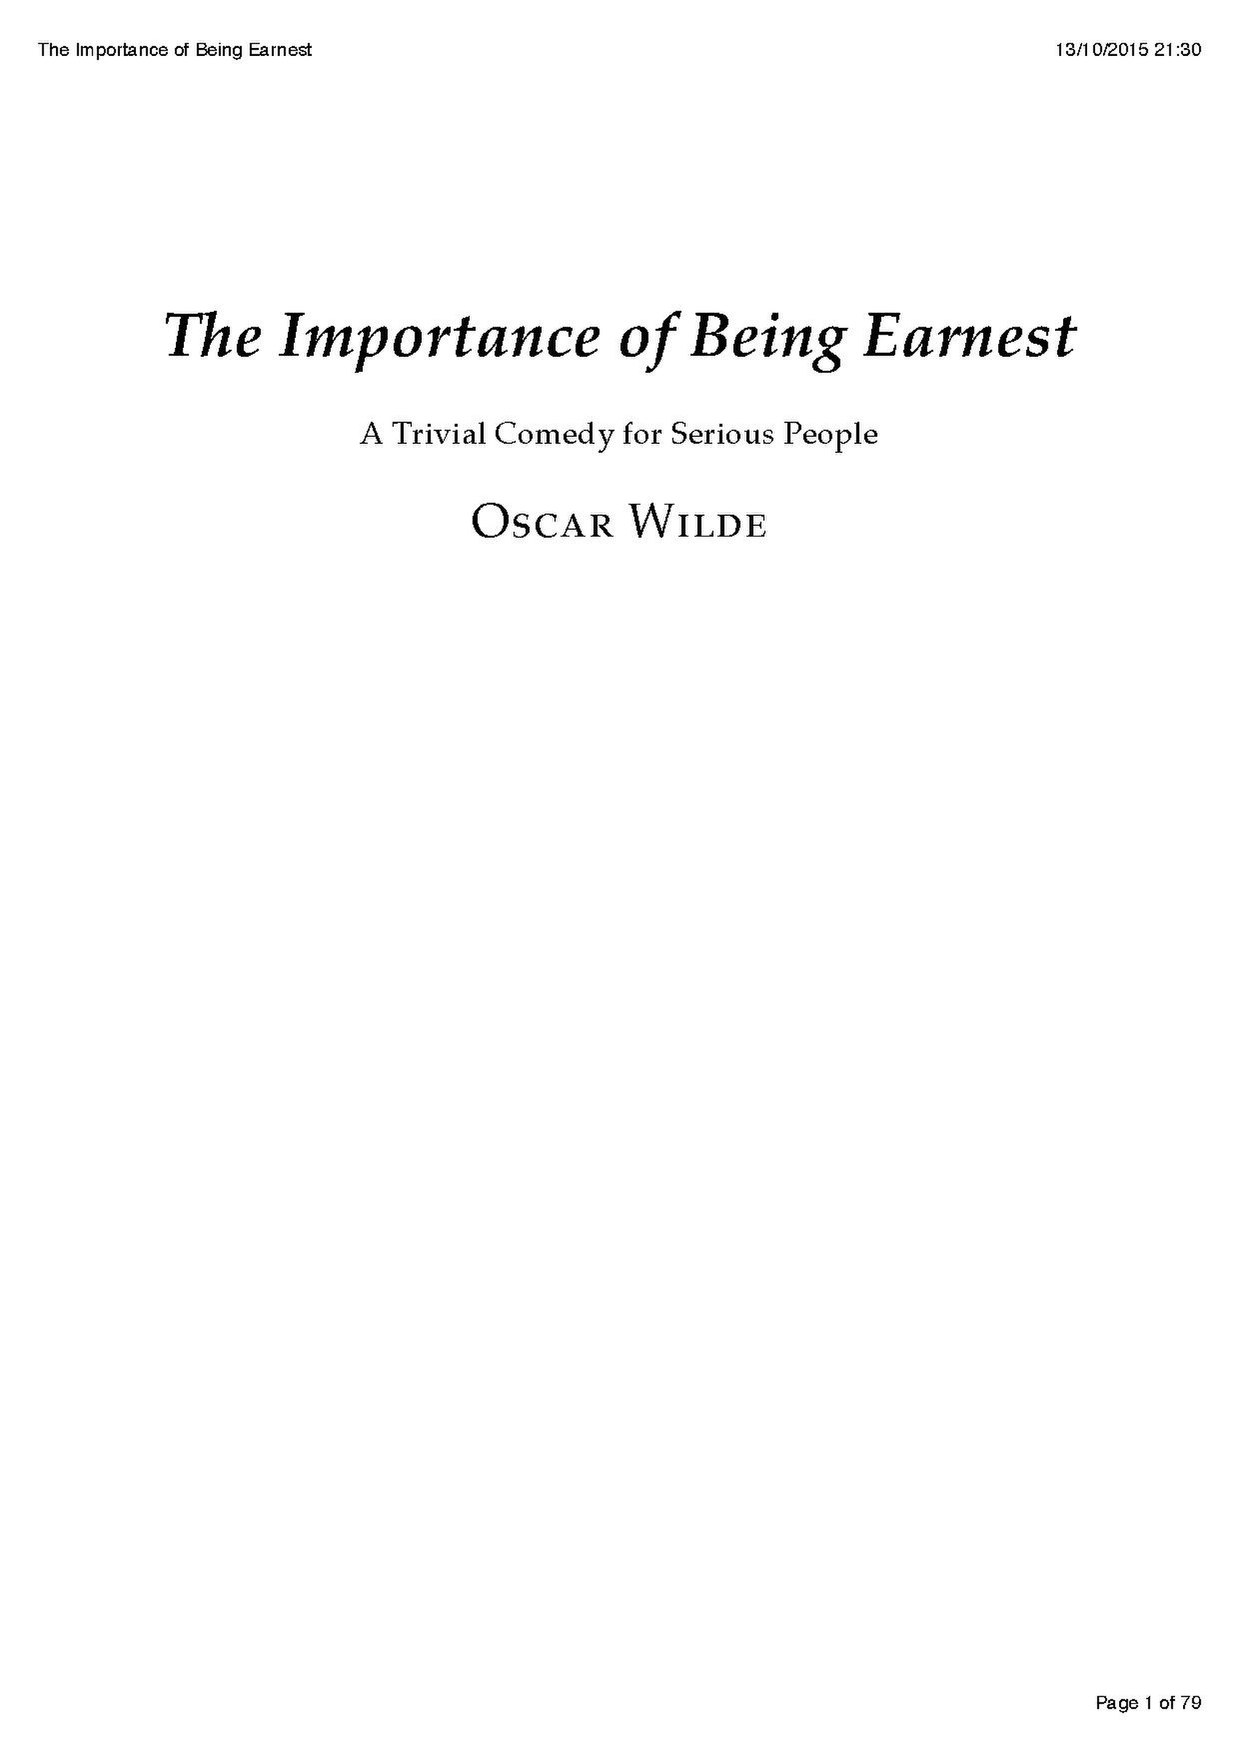 antithesis in importance of being earnest The importance of being earnest 198 likes oscar wilde's classic comedy, the importance of being earnest, makes a welcome return into british society in.